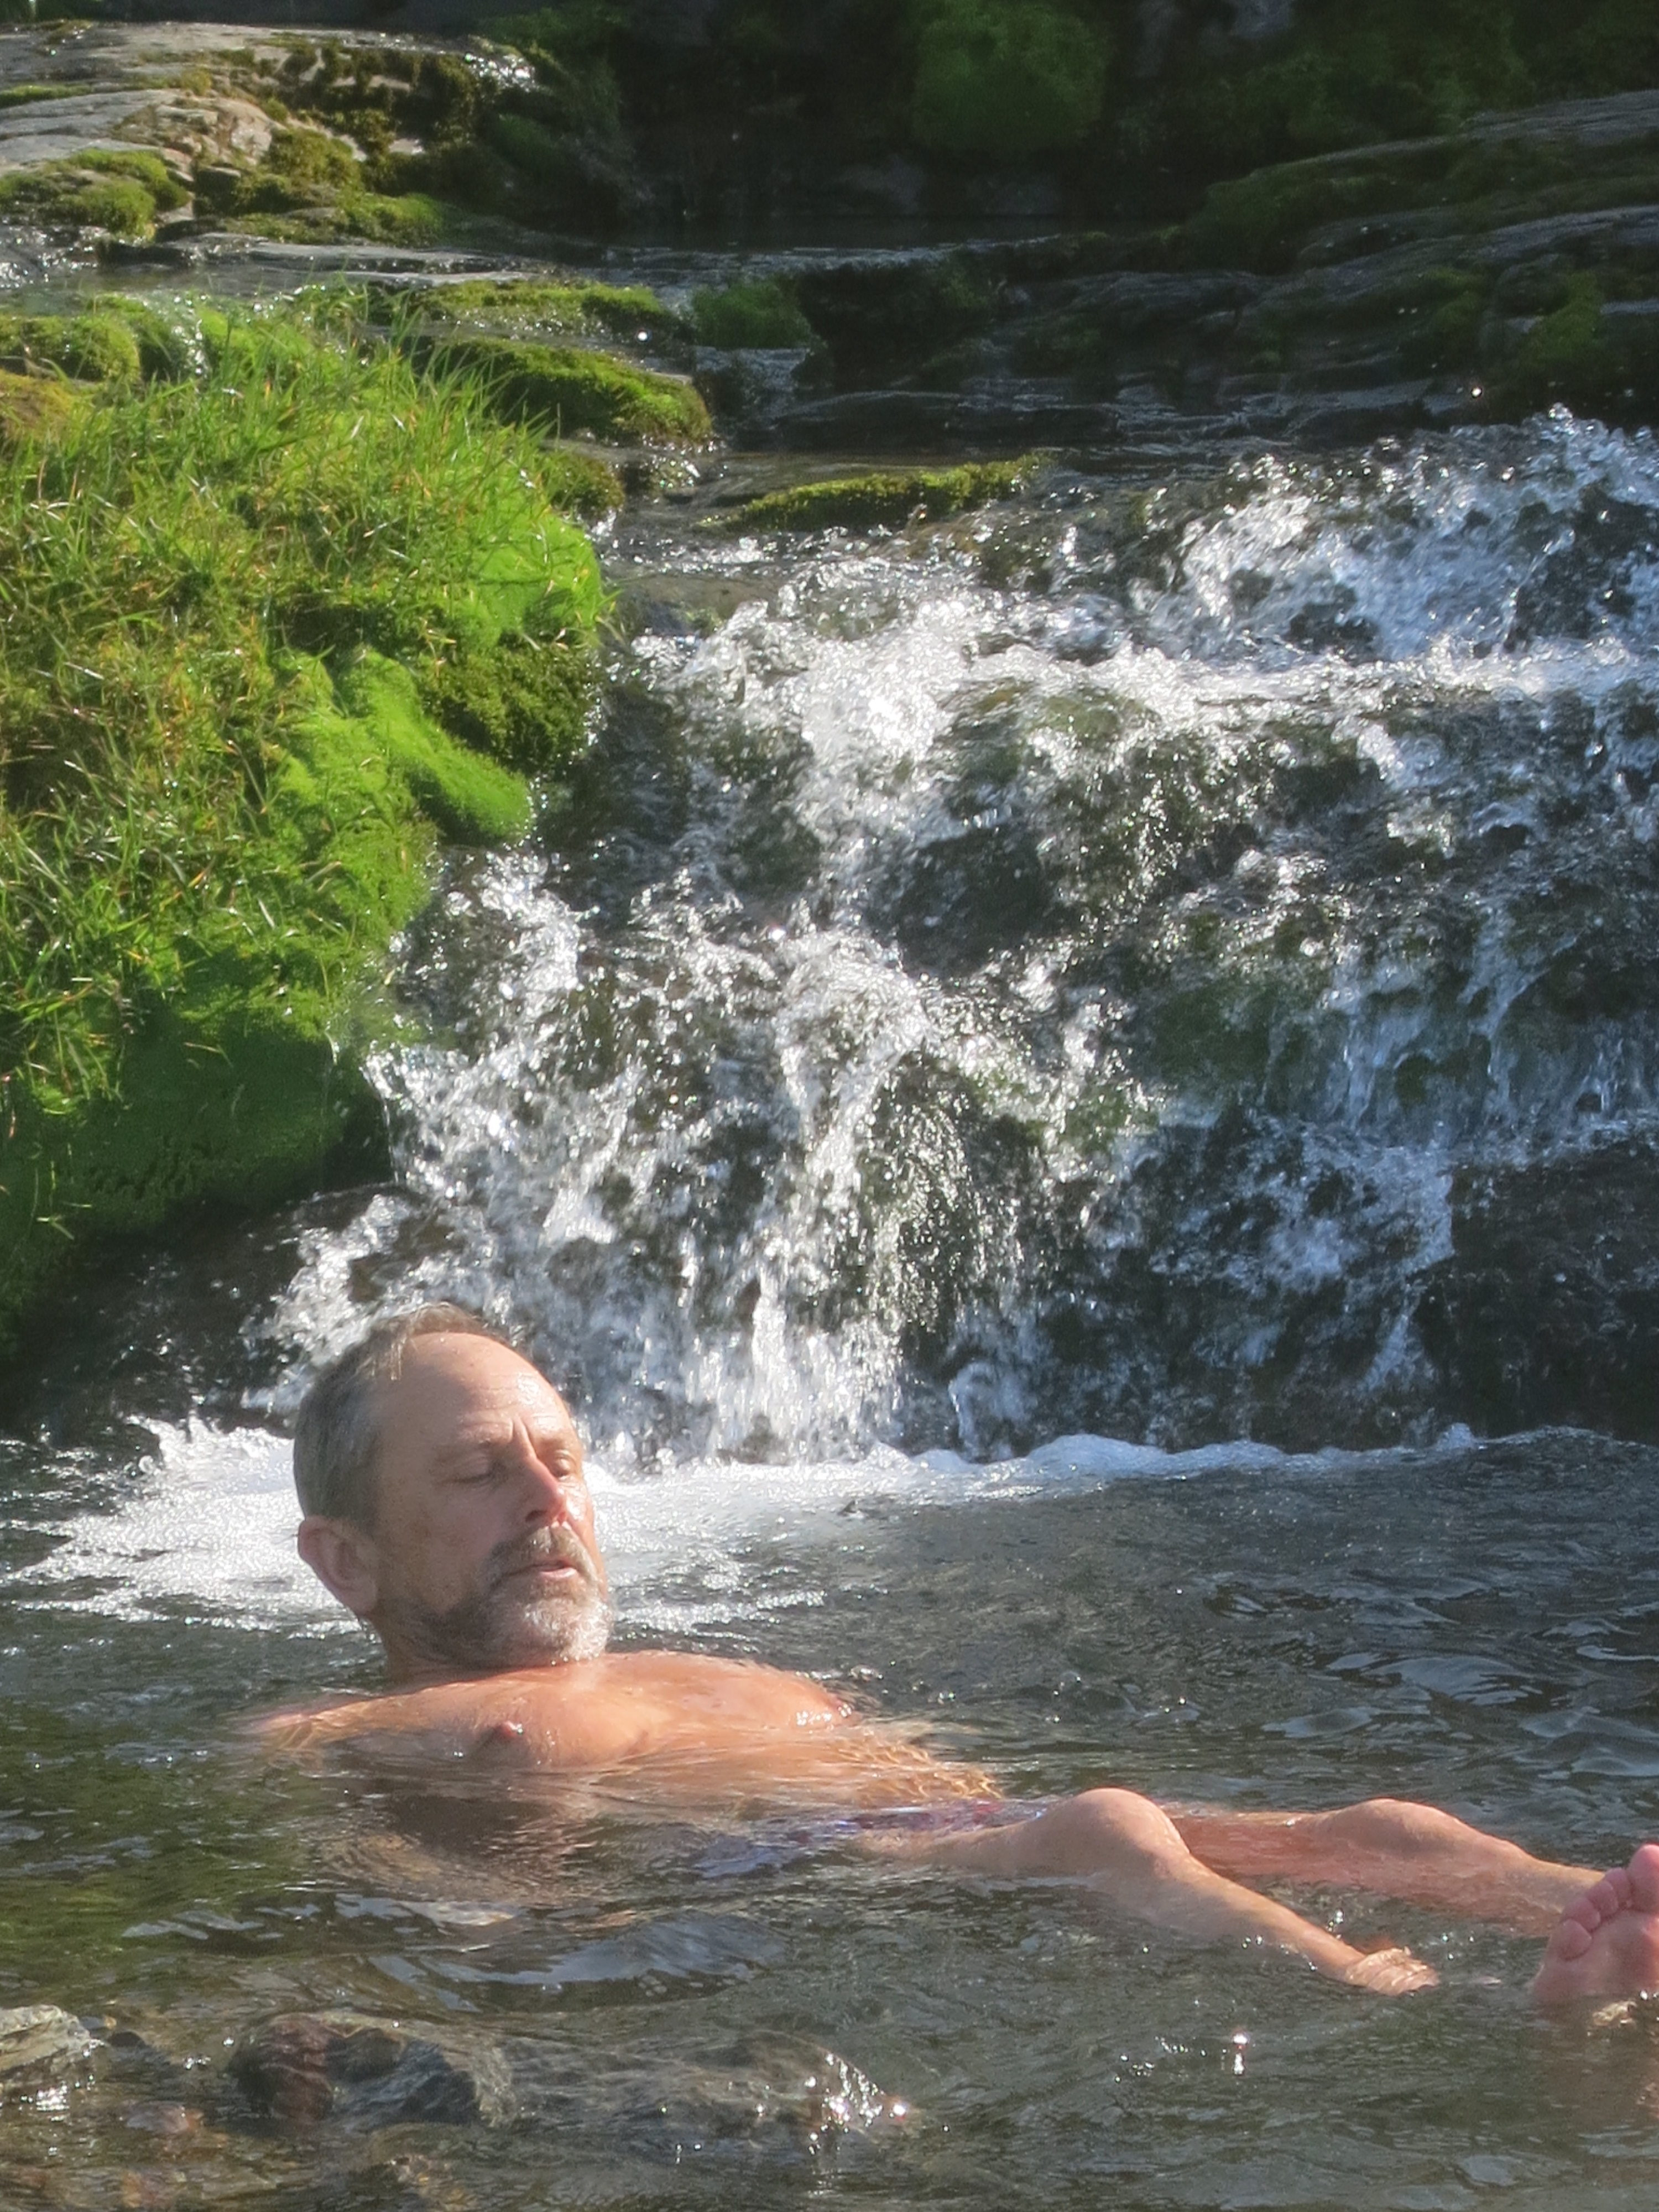 Mats swimming in the streams on Shackleton's Hike from Fortuna Bay (by Rod Macfarlane)